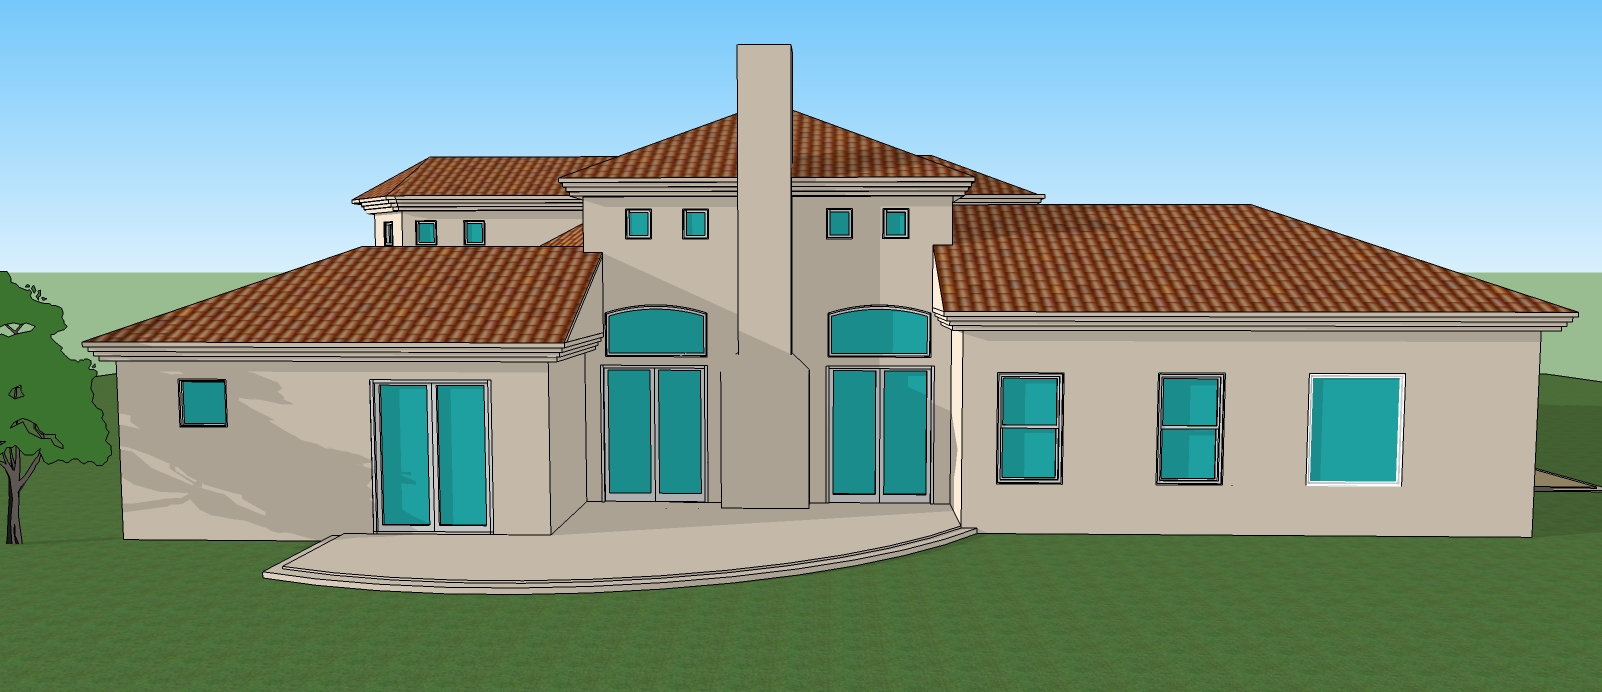 Simple house design drawing